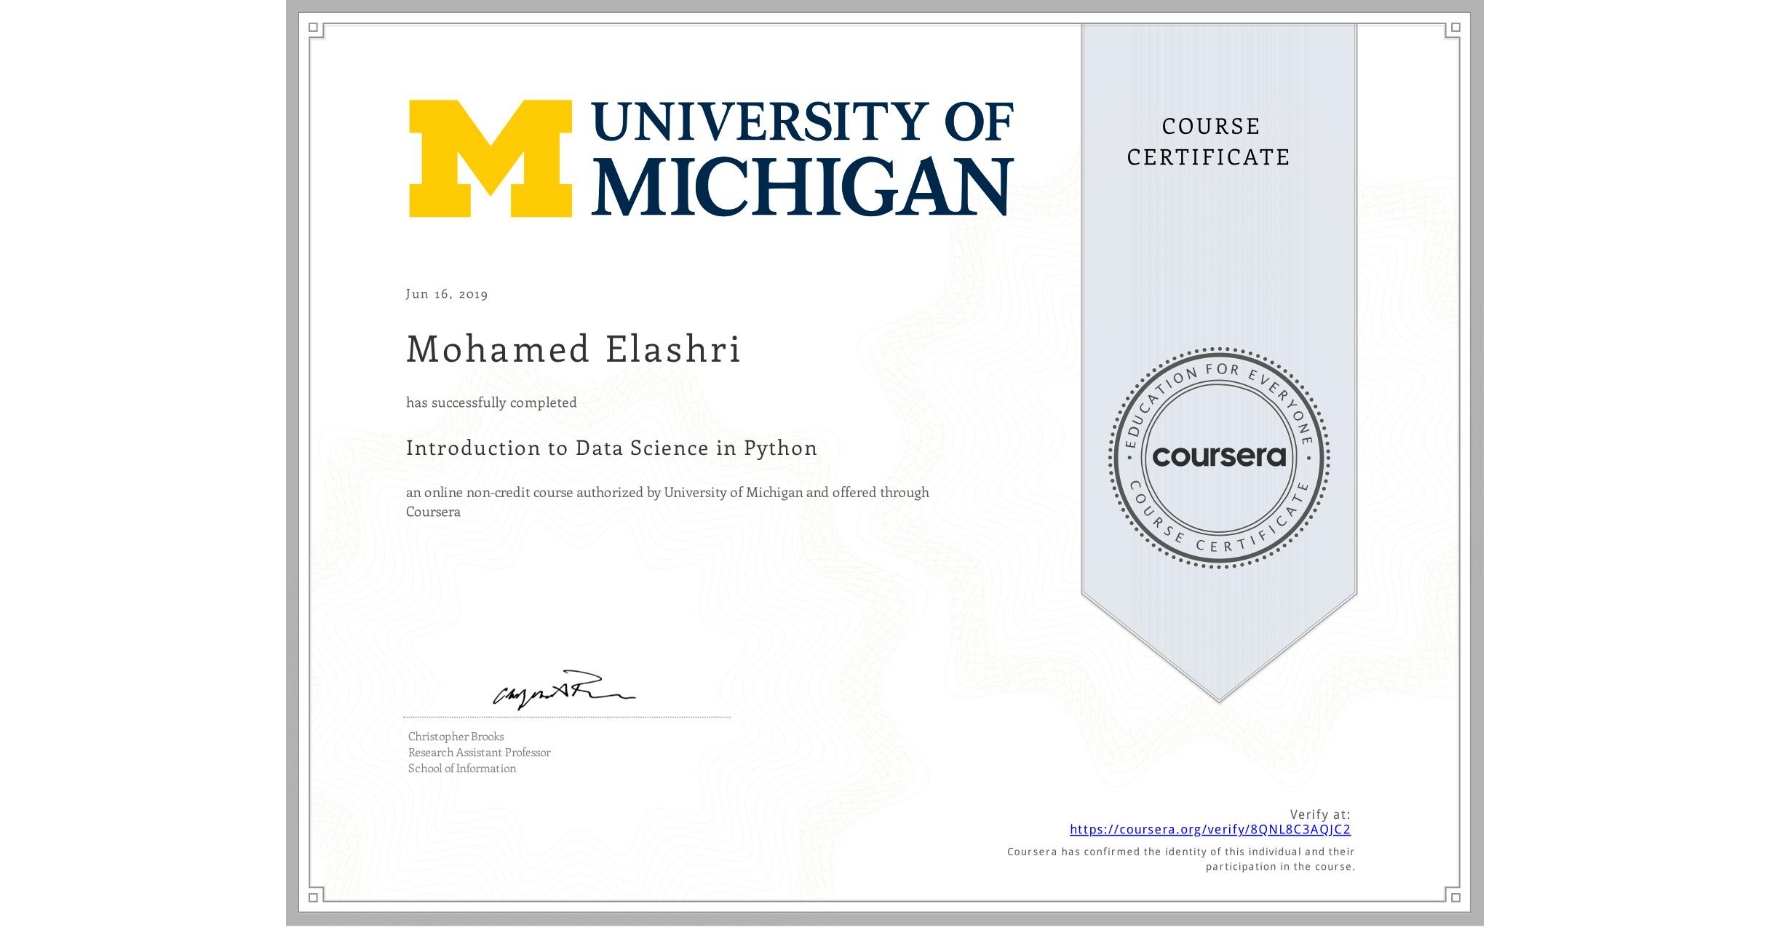 View certificate for Mohamed Elashri, Introduction to Data Science in Python, an online non-credit course authorized by University of Michigan and offered through Coursera